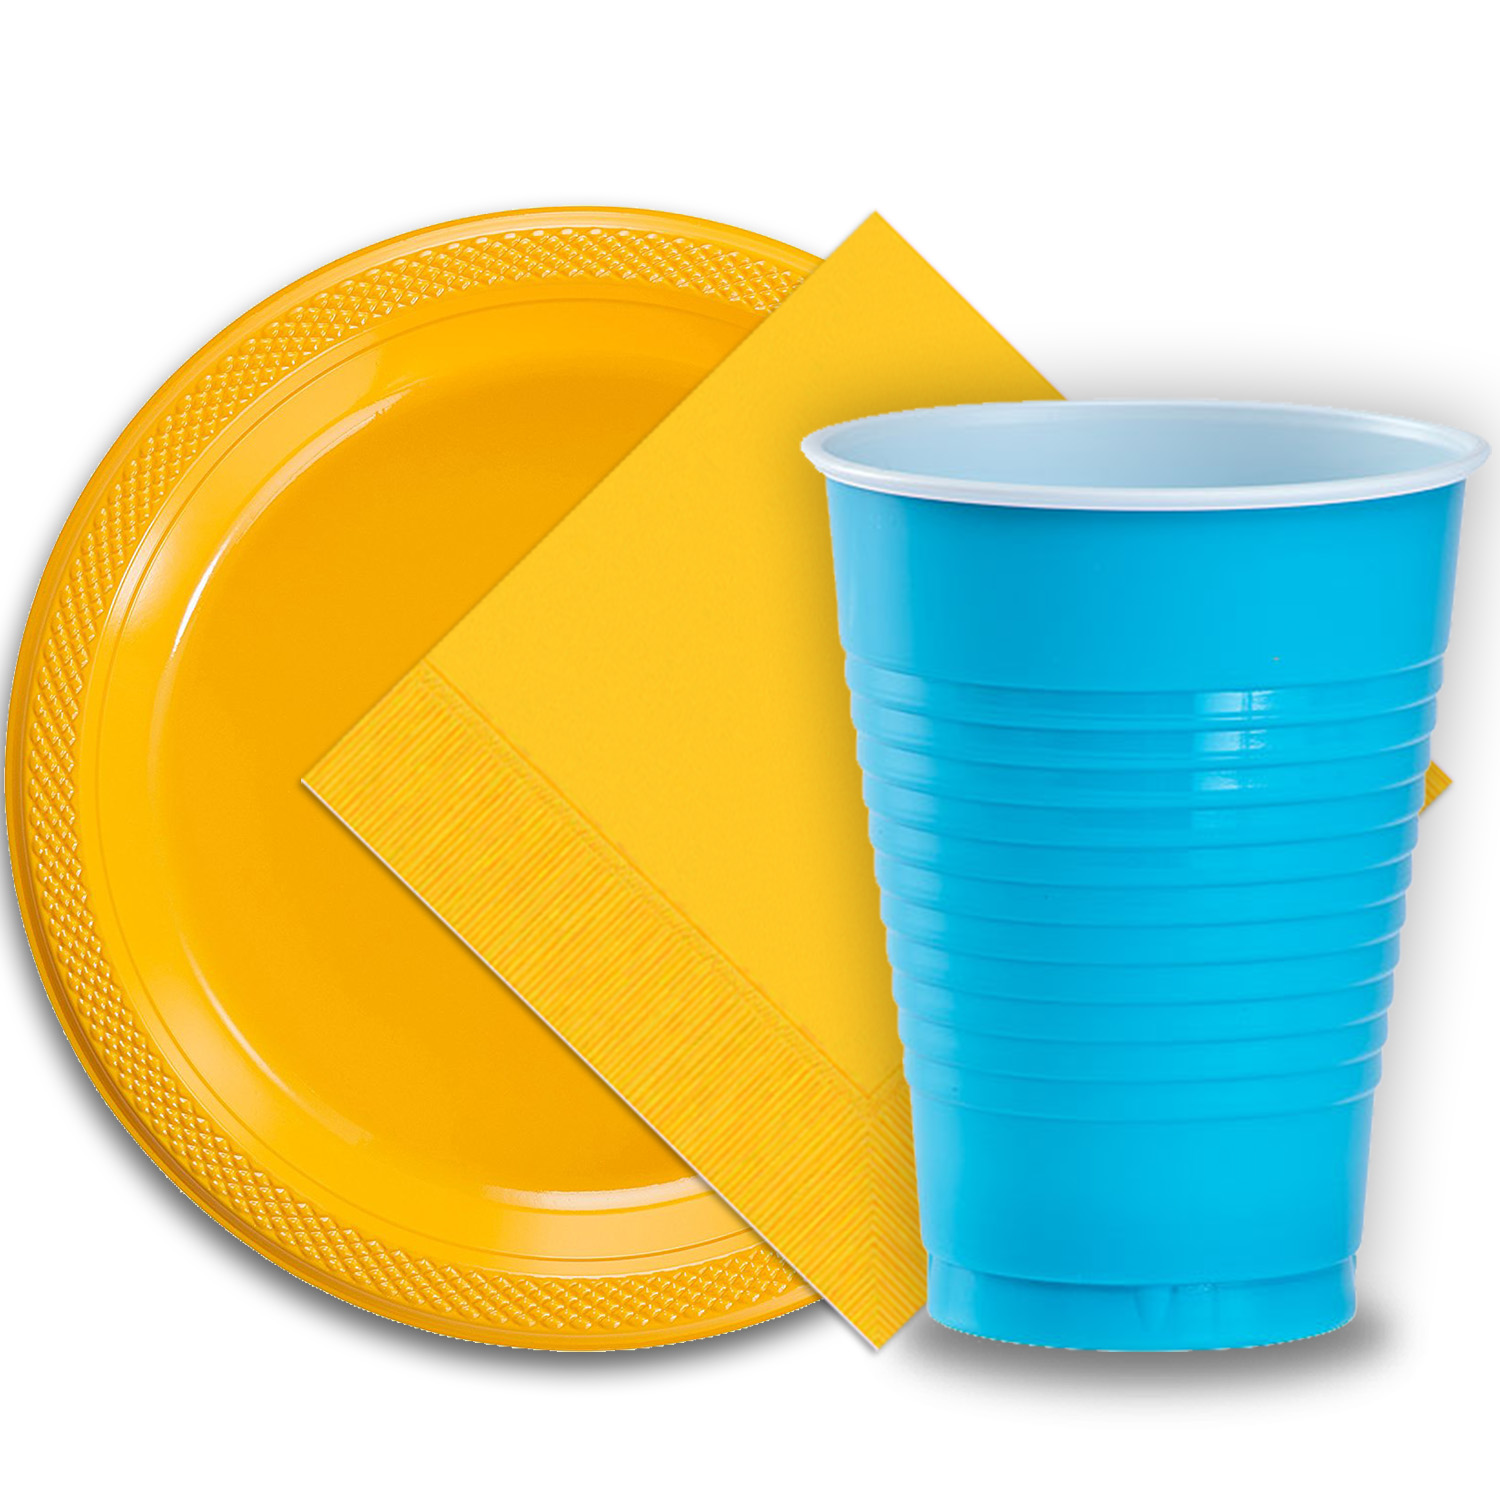 """50 Yellow Plastic Plates (9""""), 50 Aqua Plastic Cups (12 oz.), and 50 Yellow Paper Napkins, Dazzelling Colored Disposable Party Supplies Tableware Set for Fifty Guests."""